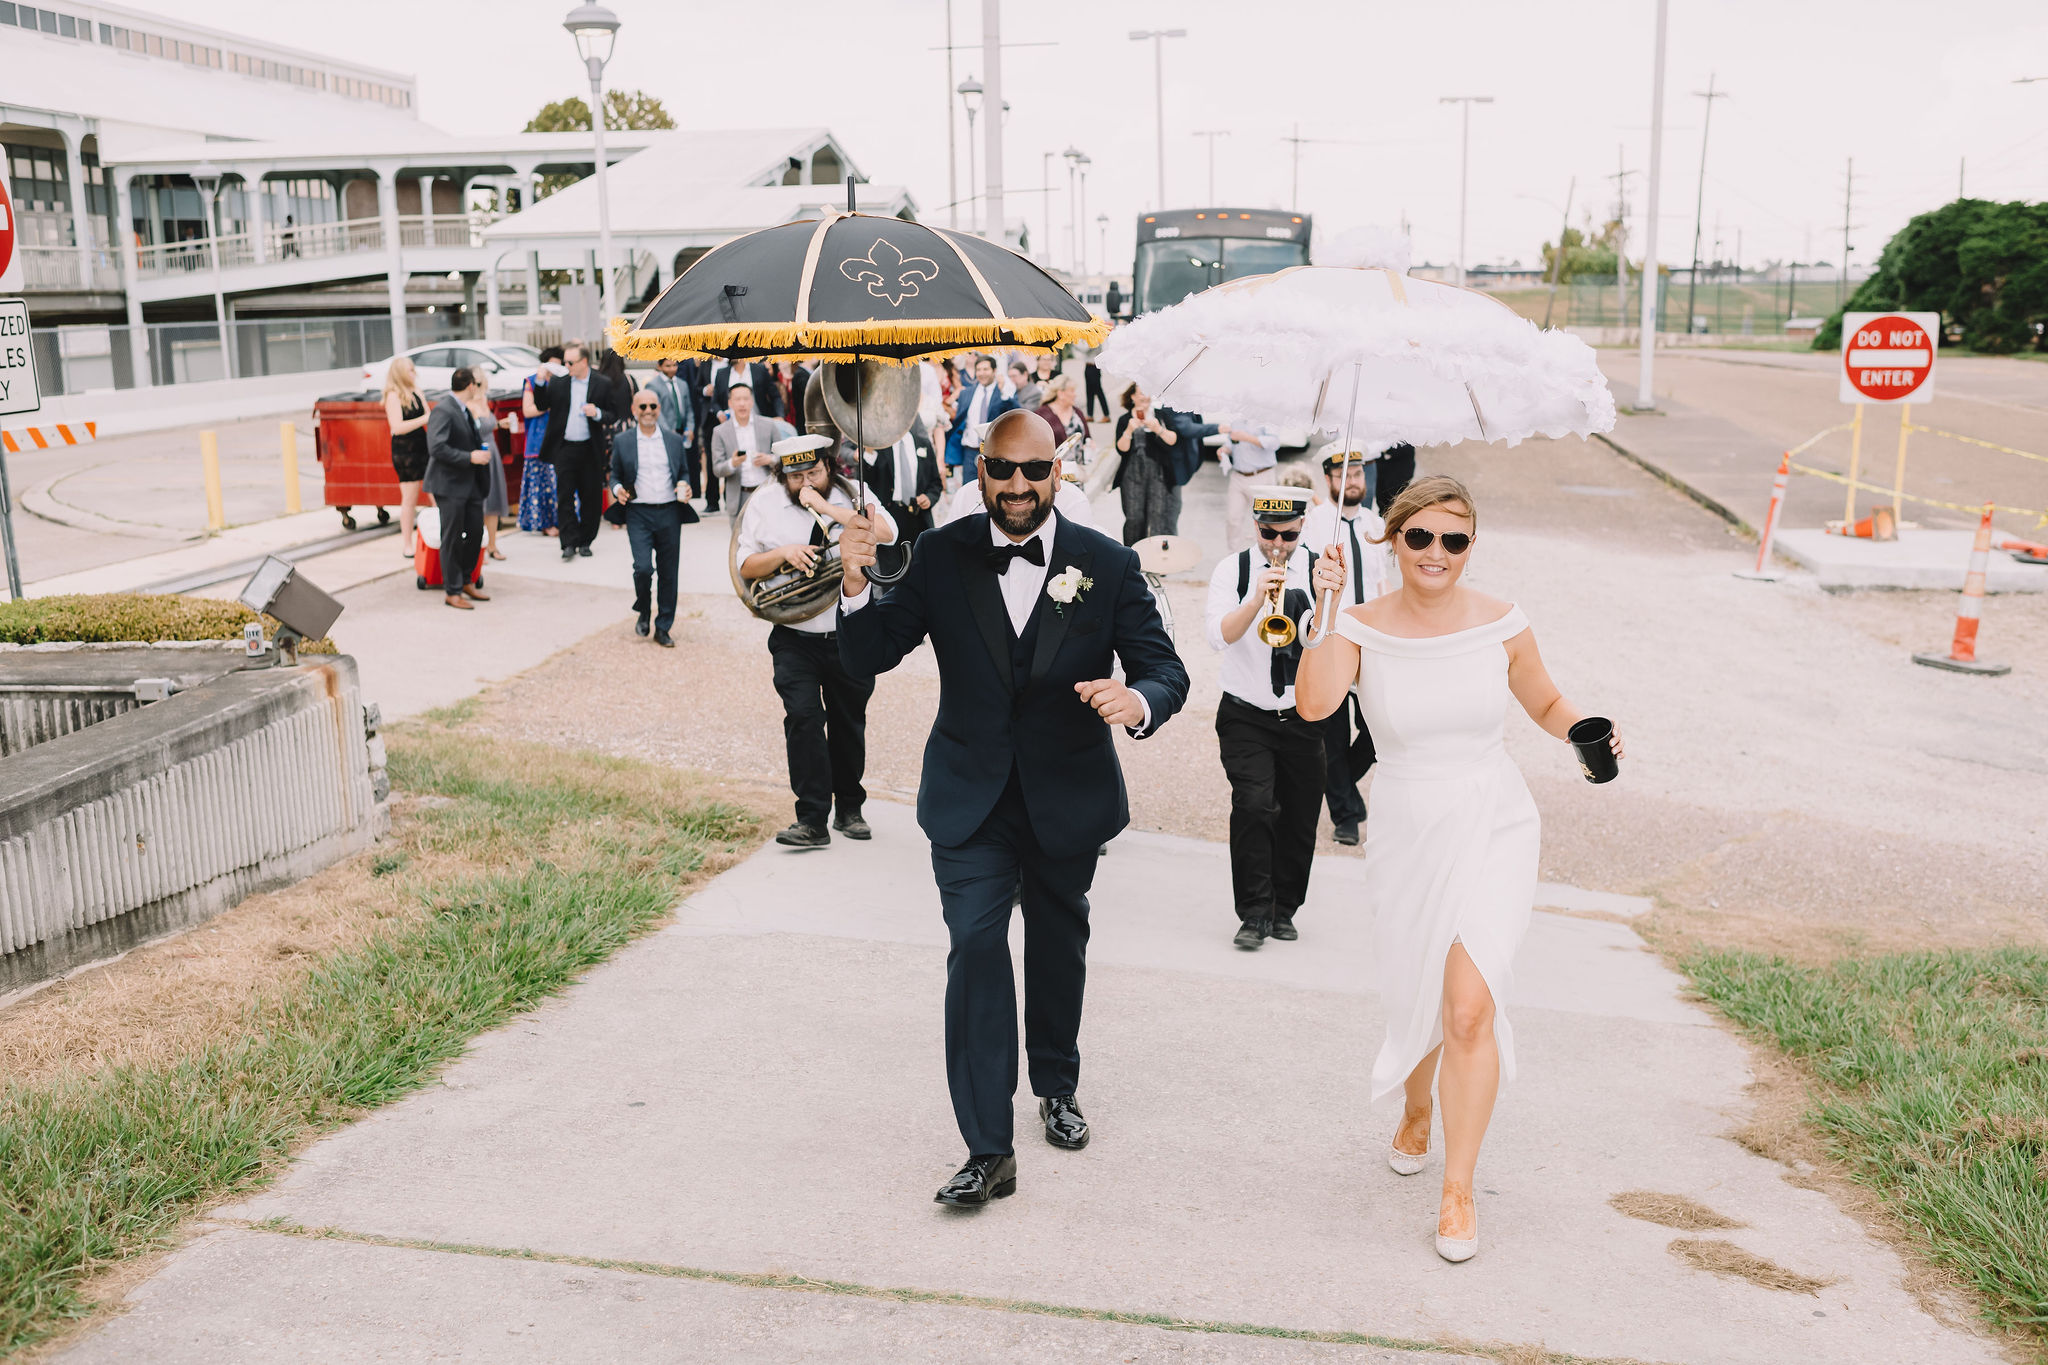 Rachel and Jimmy second line with their guests to the wedding carrying umbrellas that Rachel decorated herself.